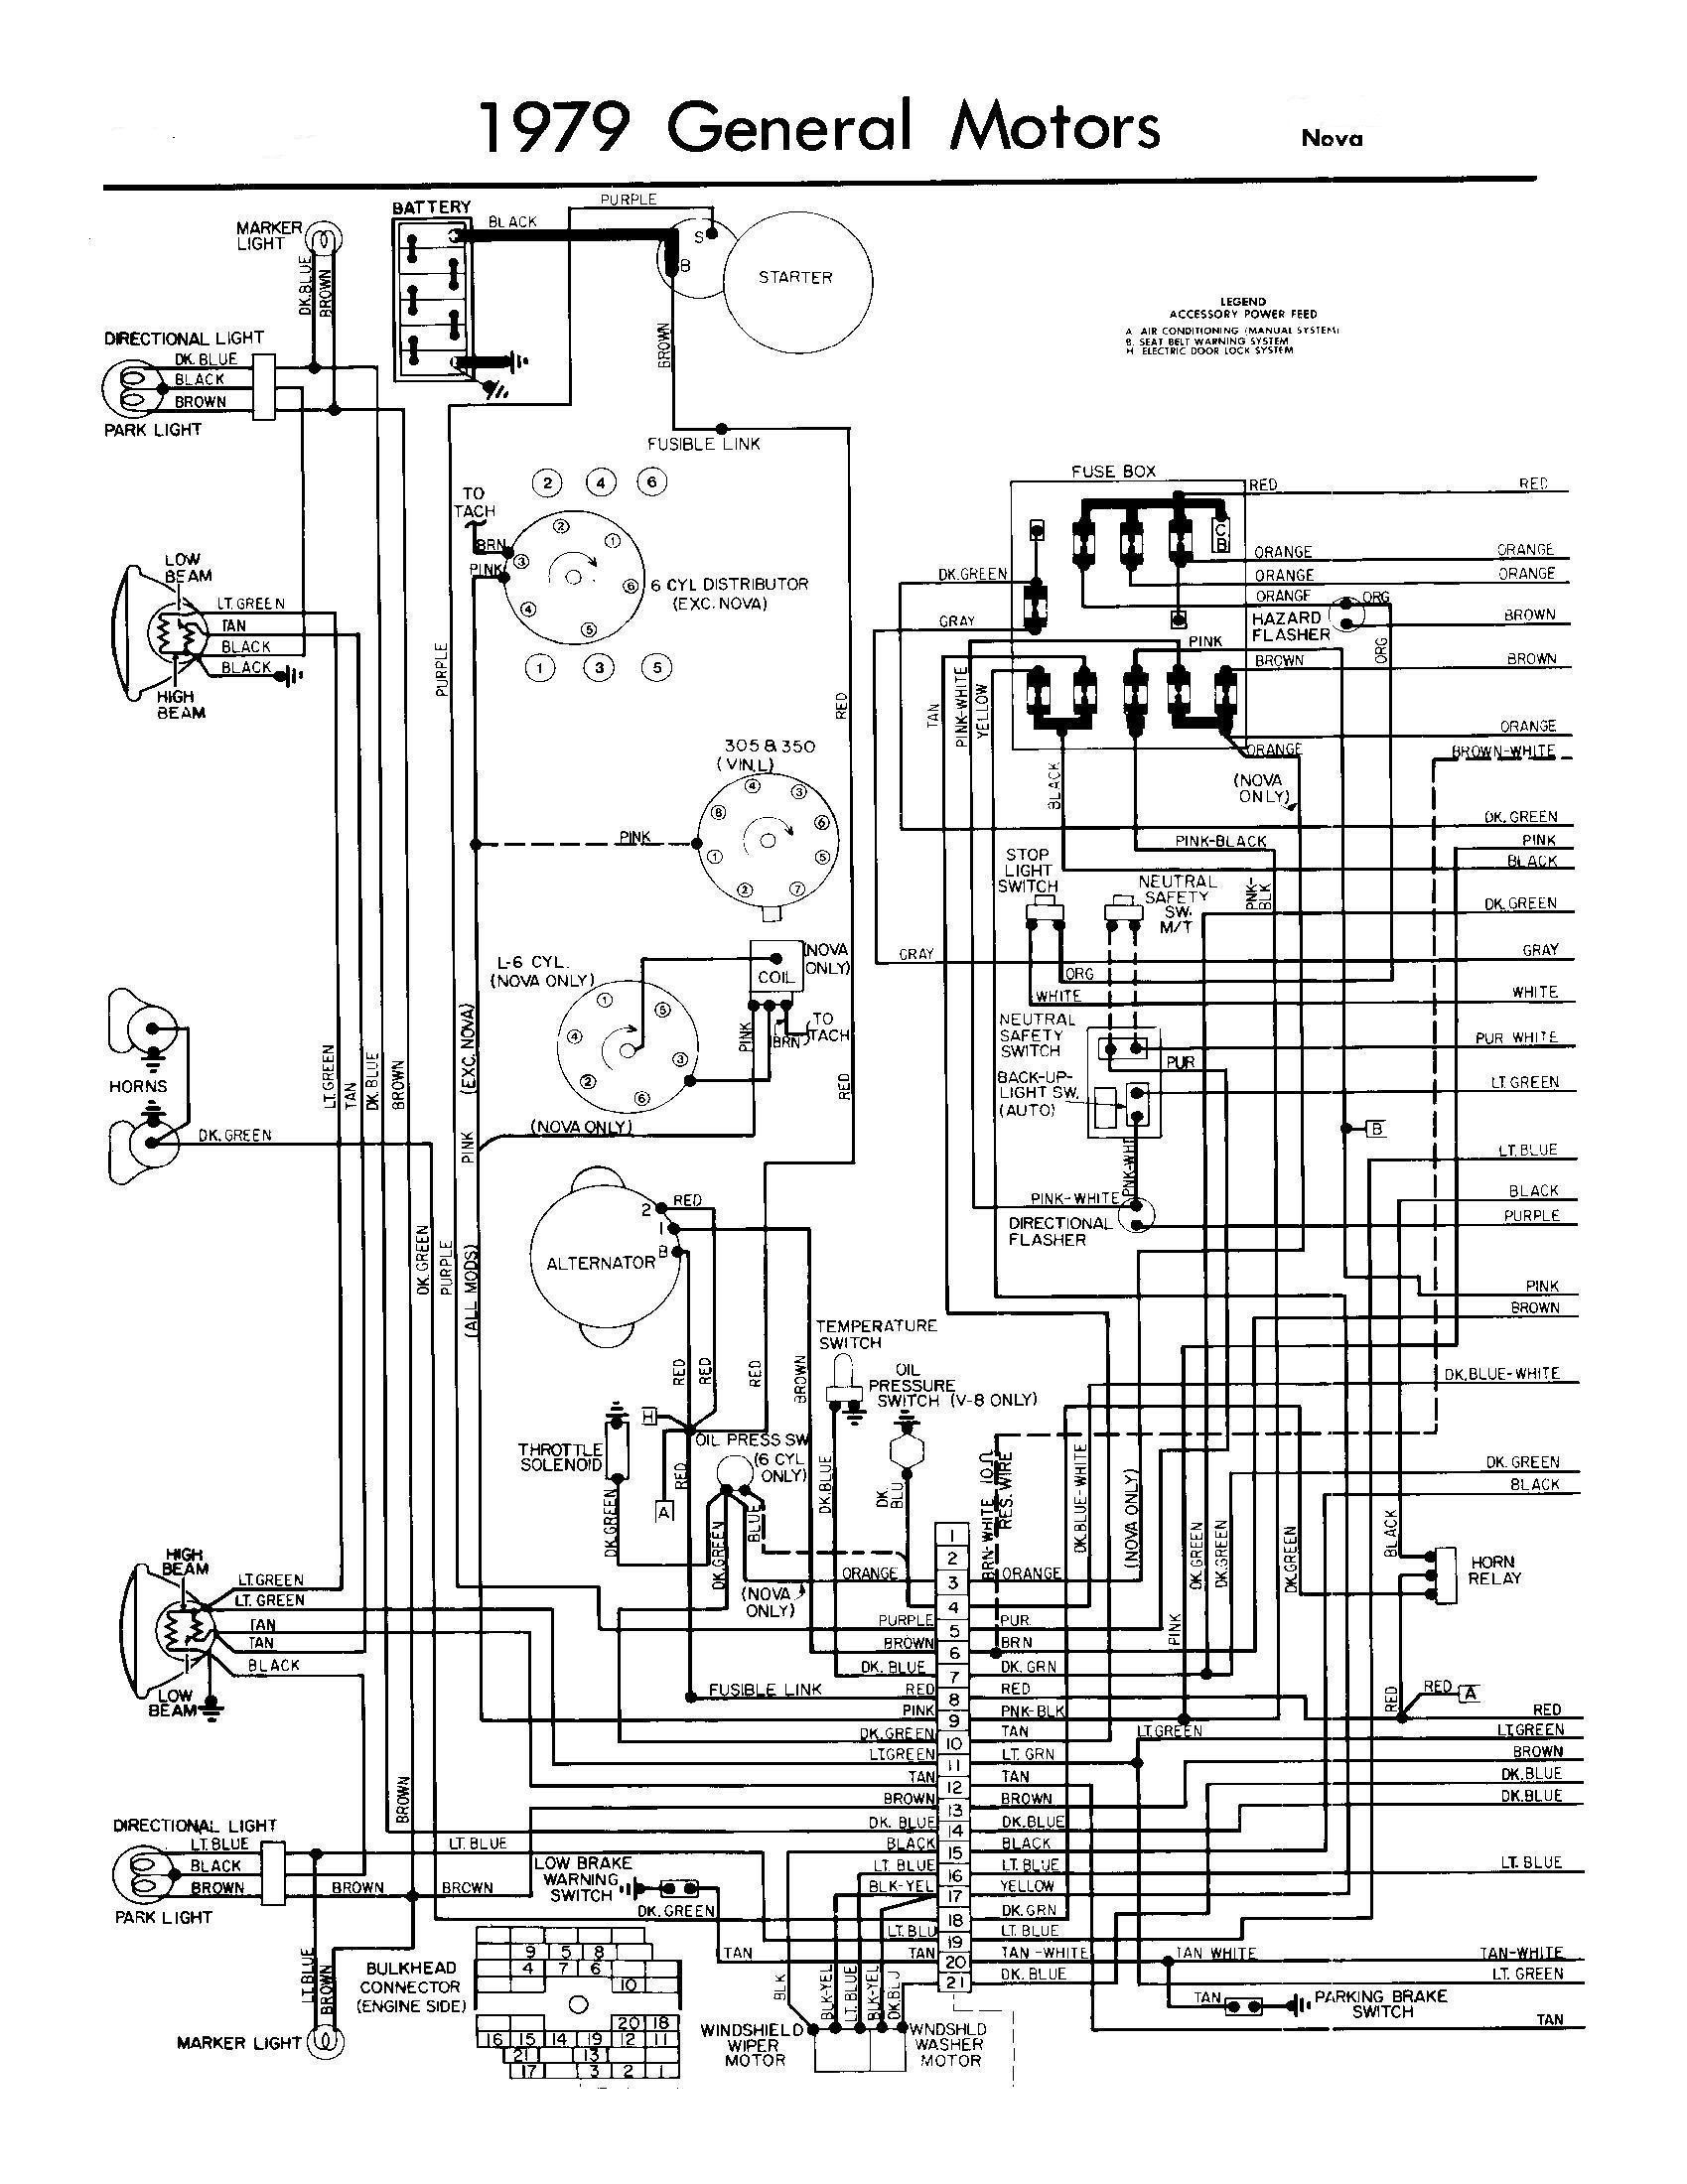 73 Chevy Truck Wiring Diagram Blinker - Wiring Diagram & Electricity ...